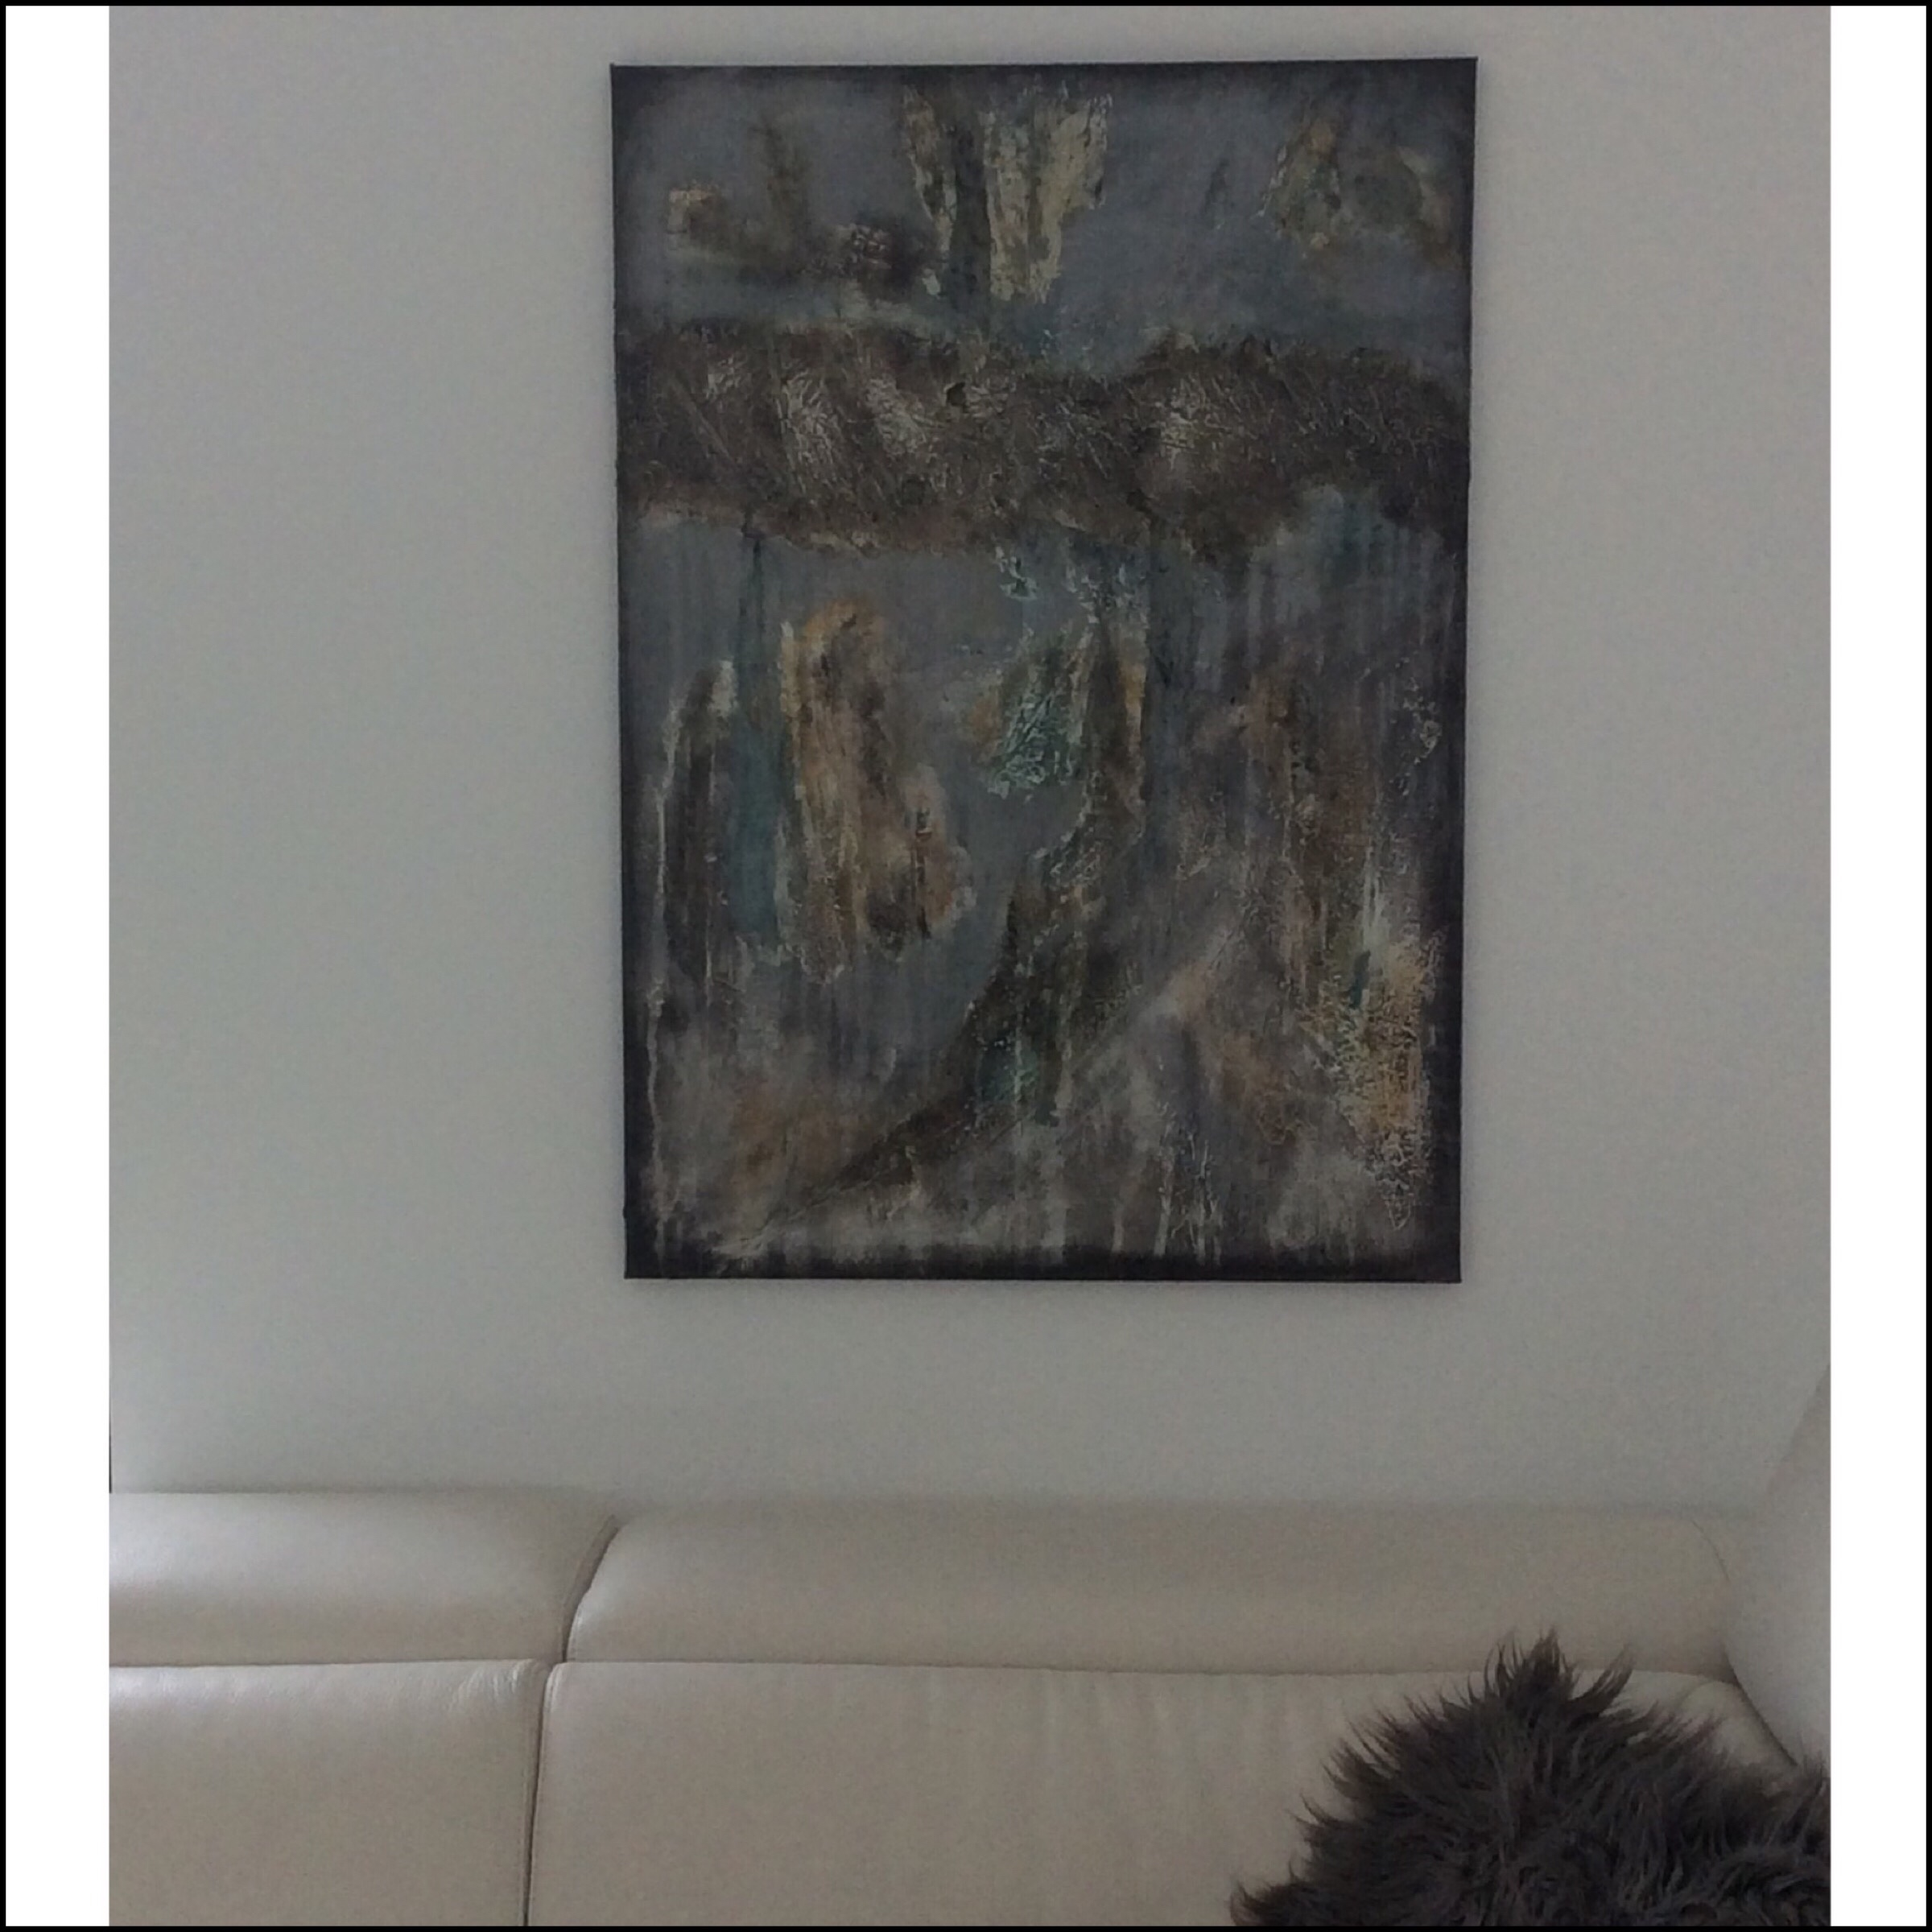 Interior design: Textured abstract painting in grey and an unusual kind of green